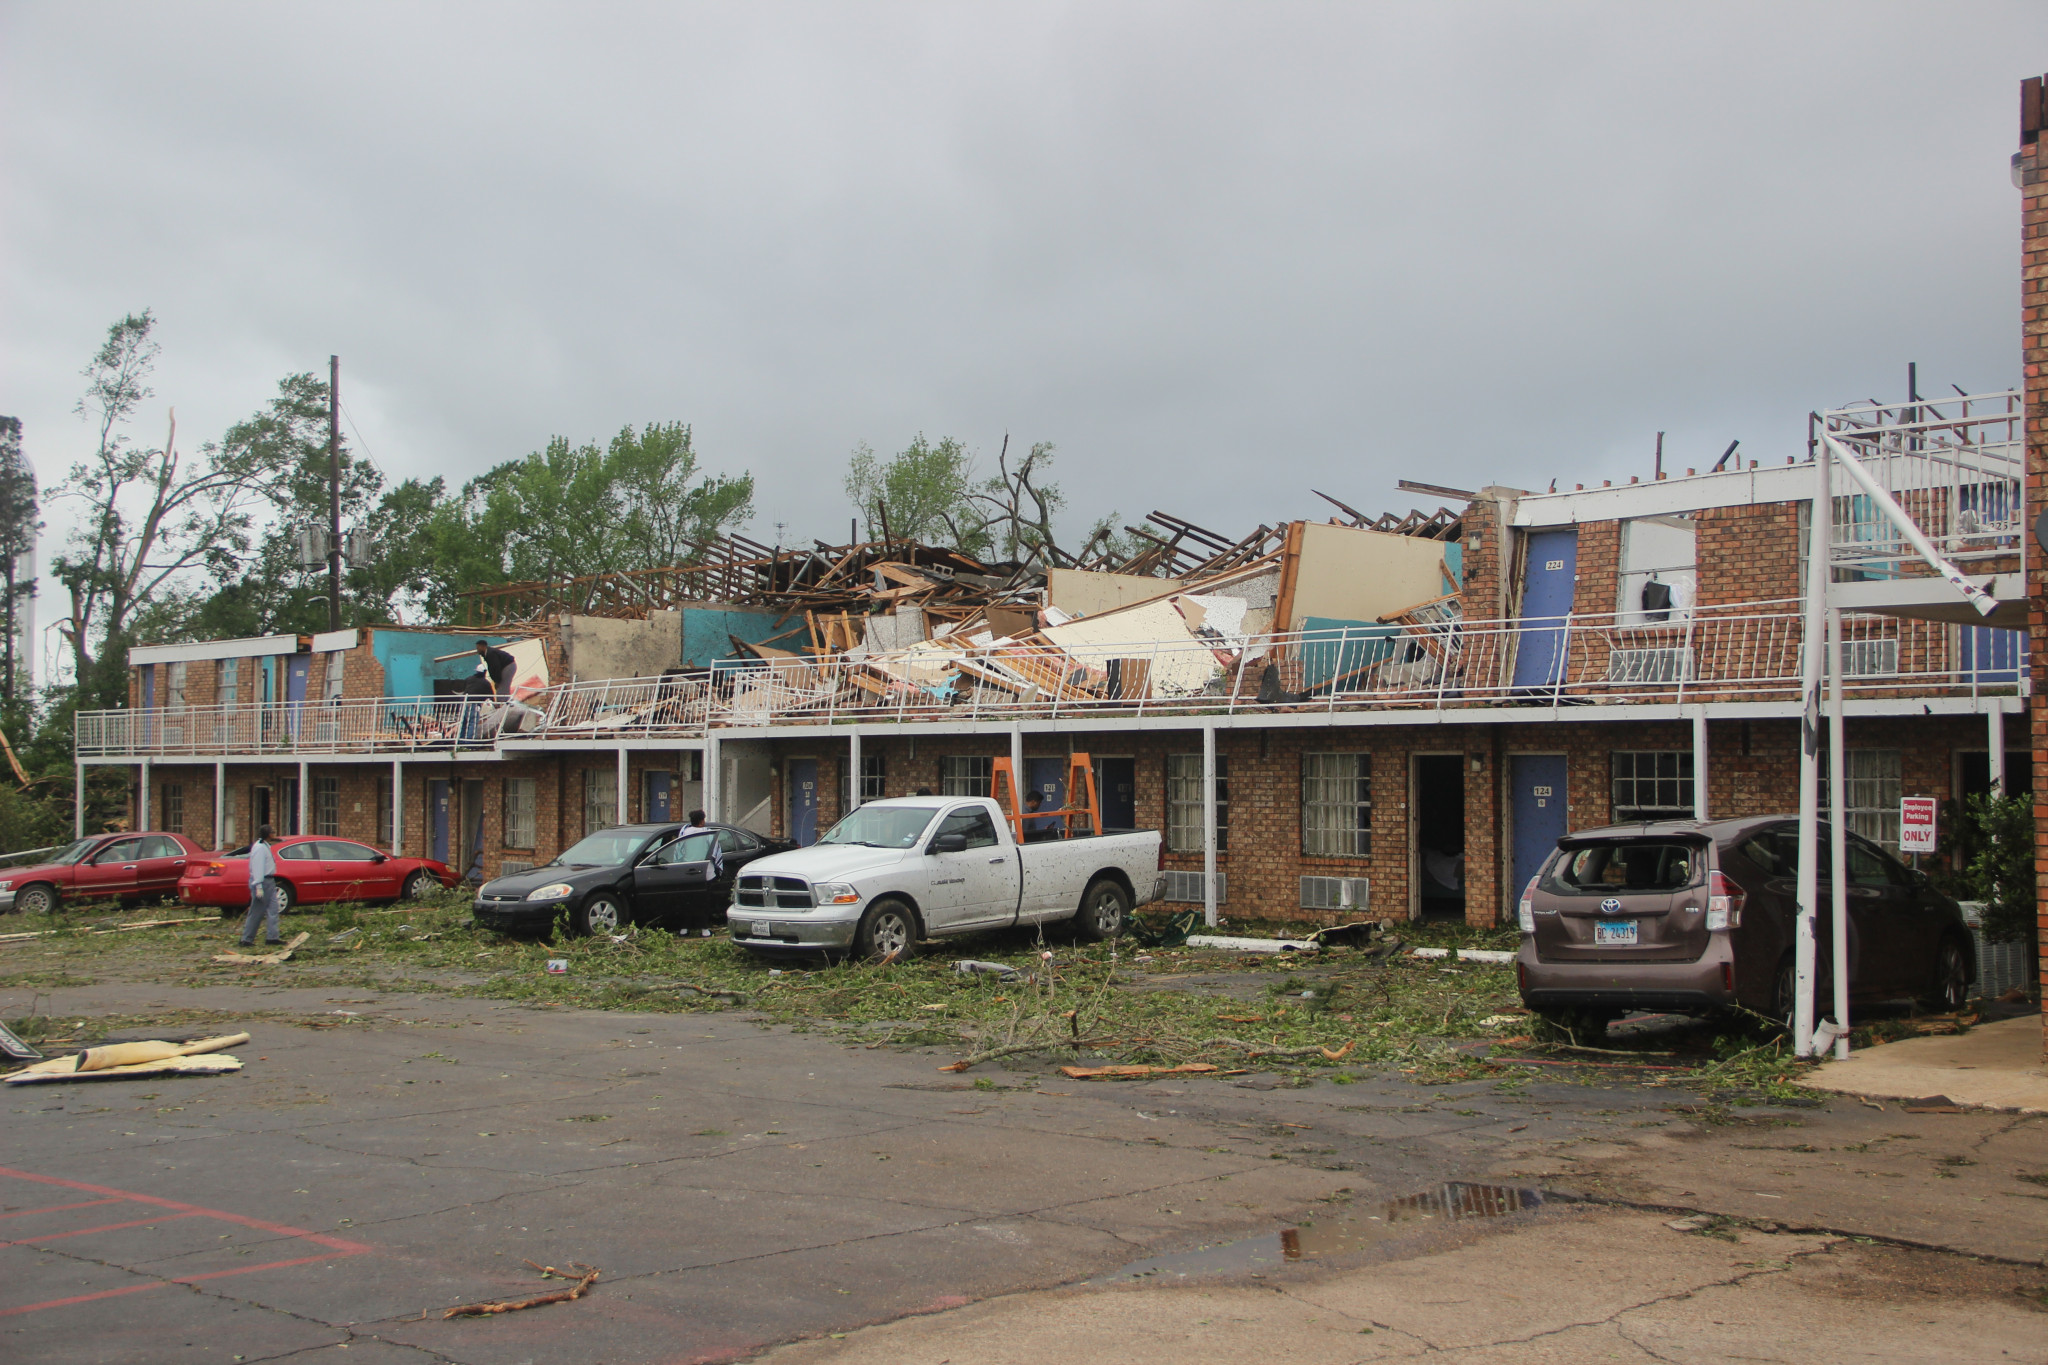 A ground view of the destroyed America's Best Value Inn as it stood the morning after the storm.